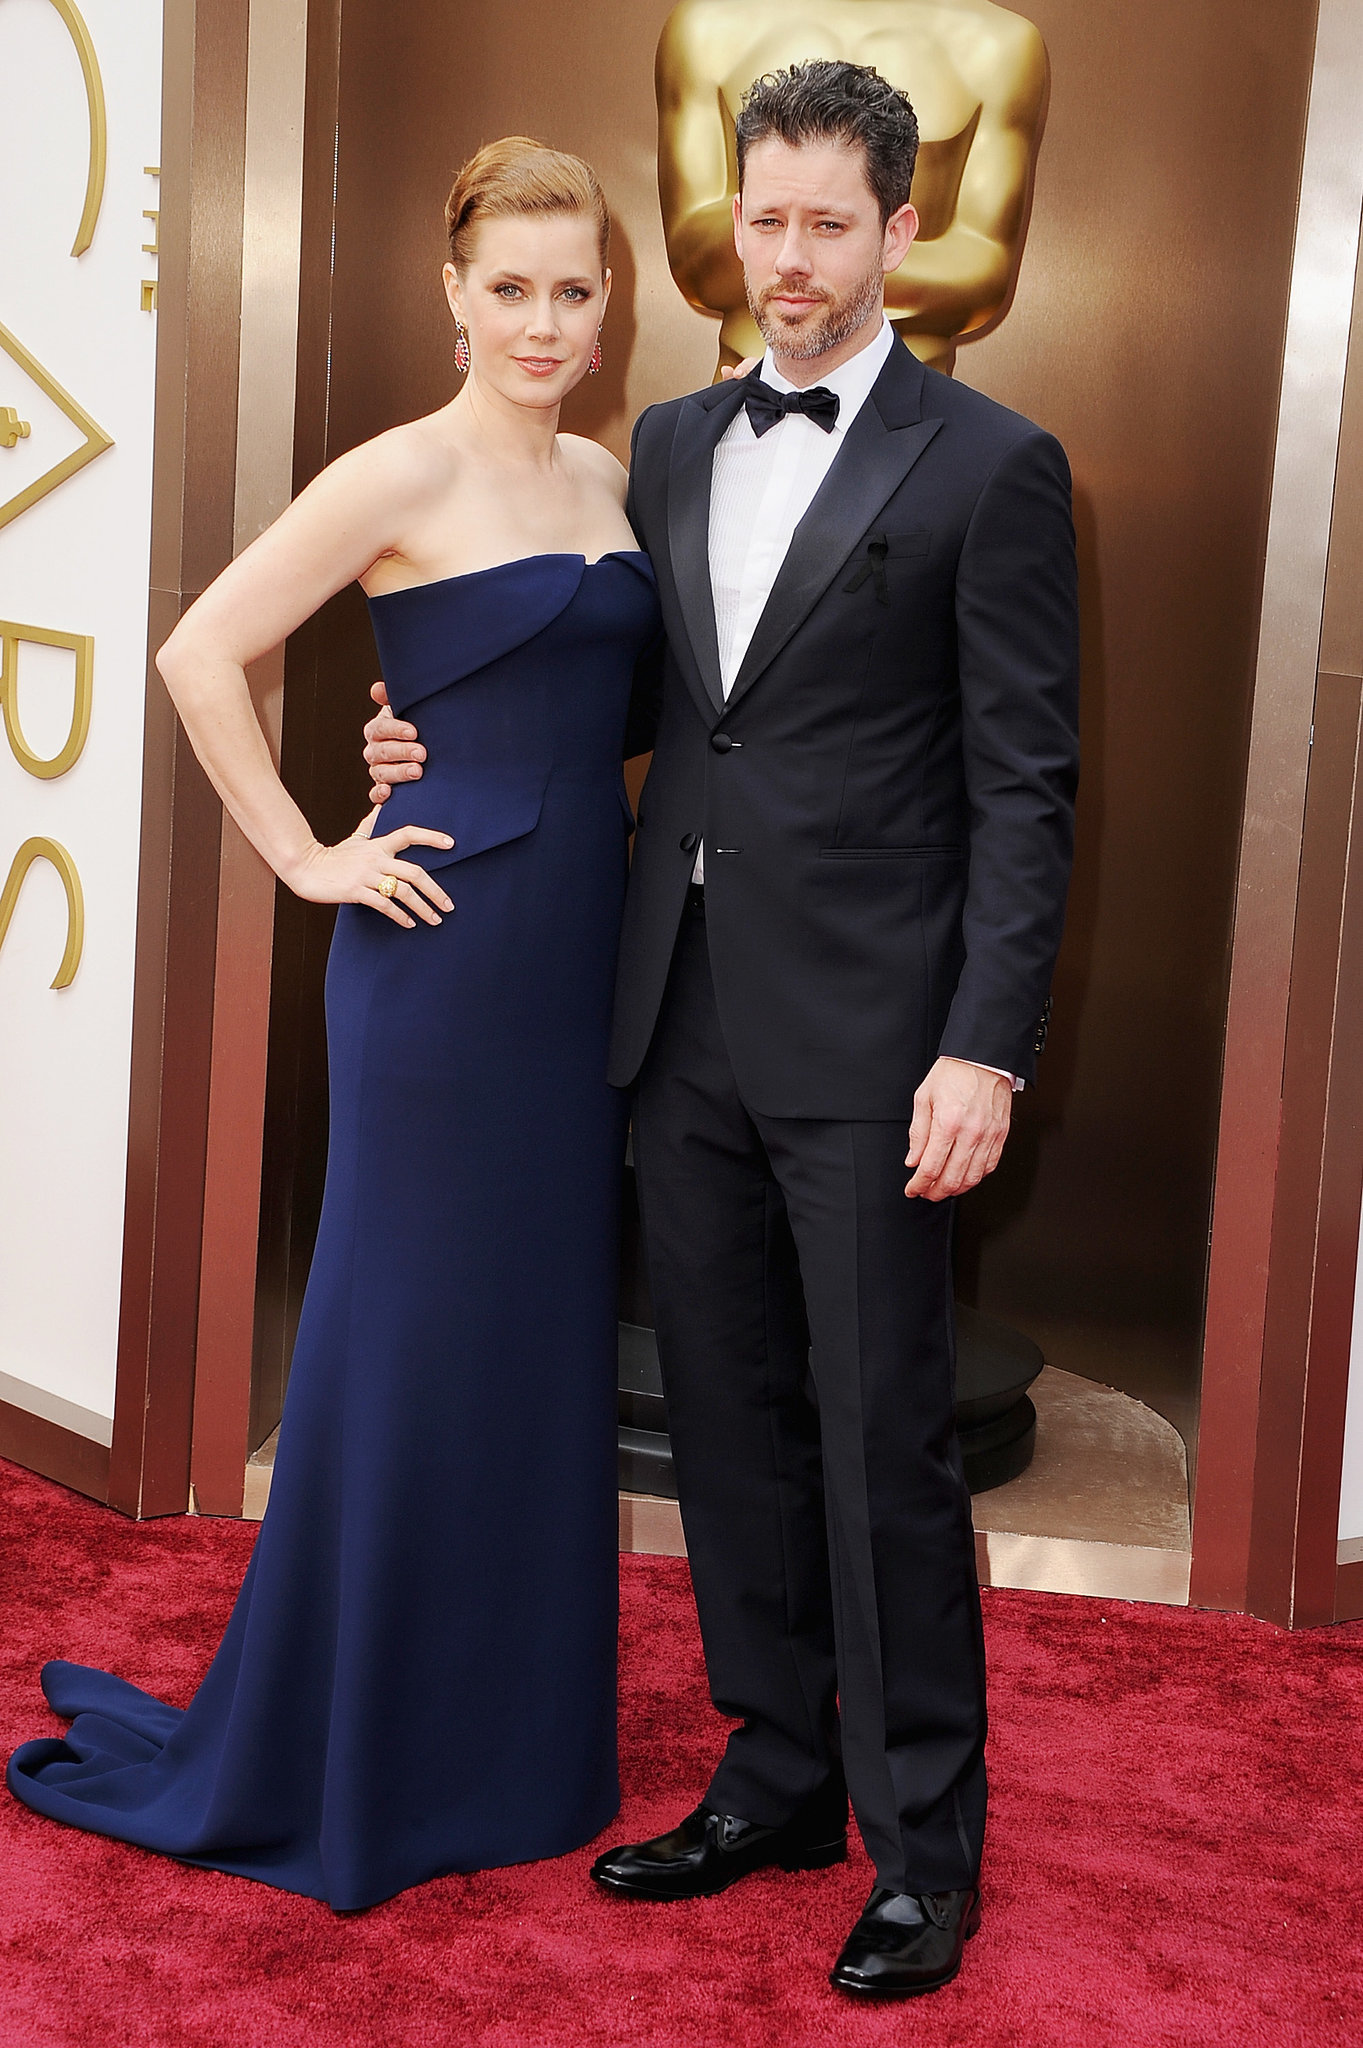 Amy Adams and Darren Le Gallo linked up for red carpet pictures.